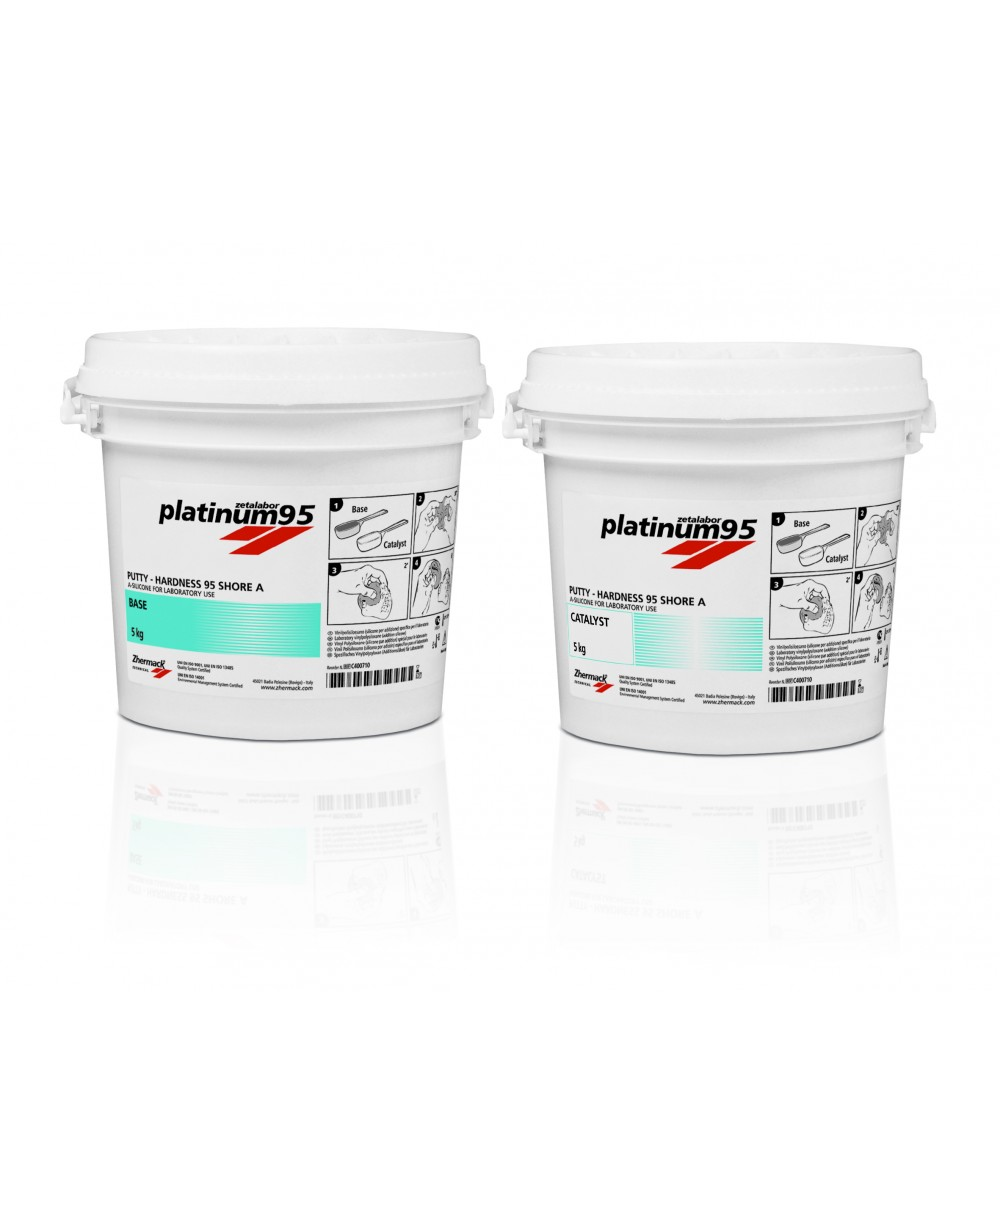 2 x 5kg Zetalabor Platinum 95 Putty - Silicone Lab Putty